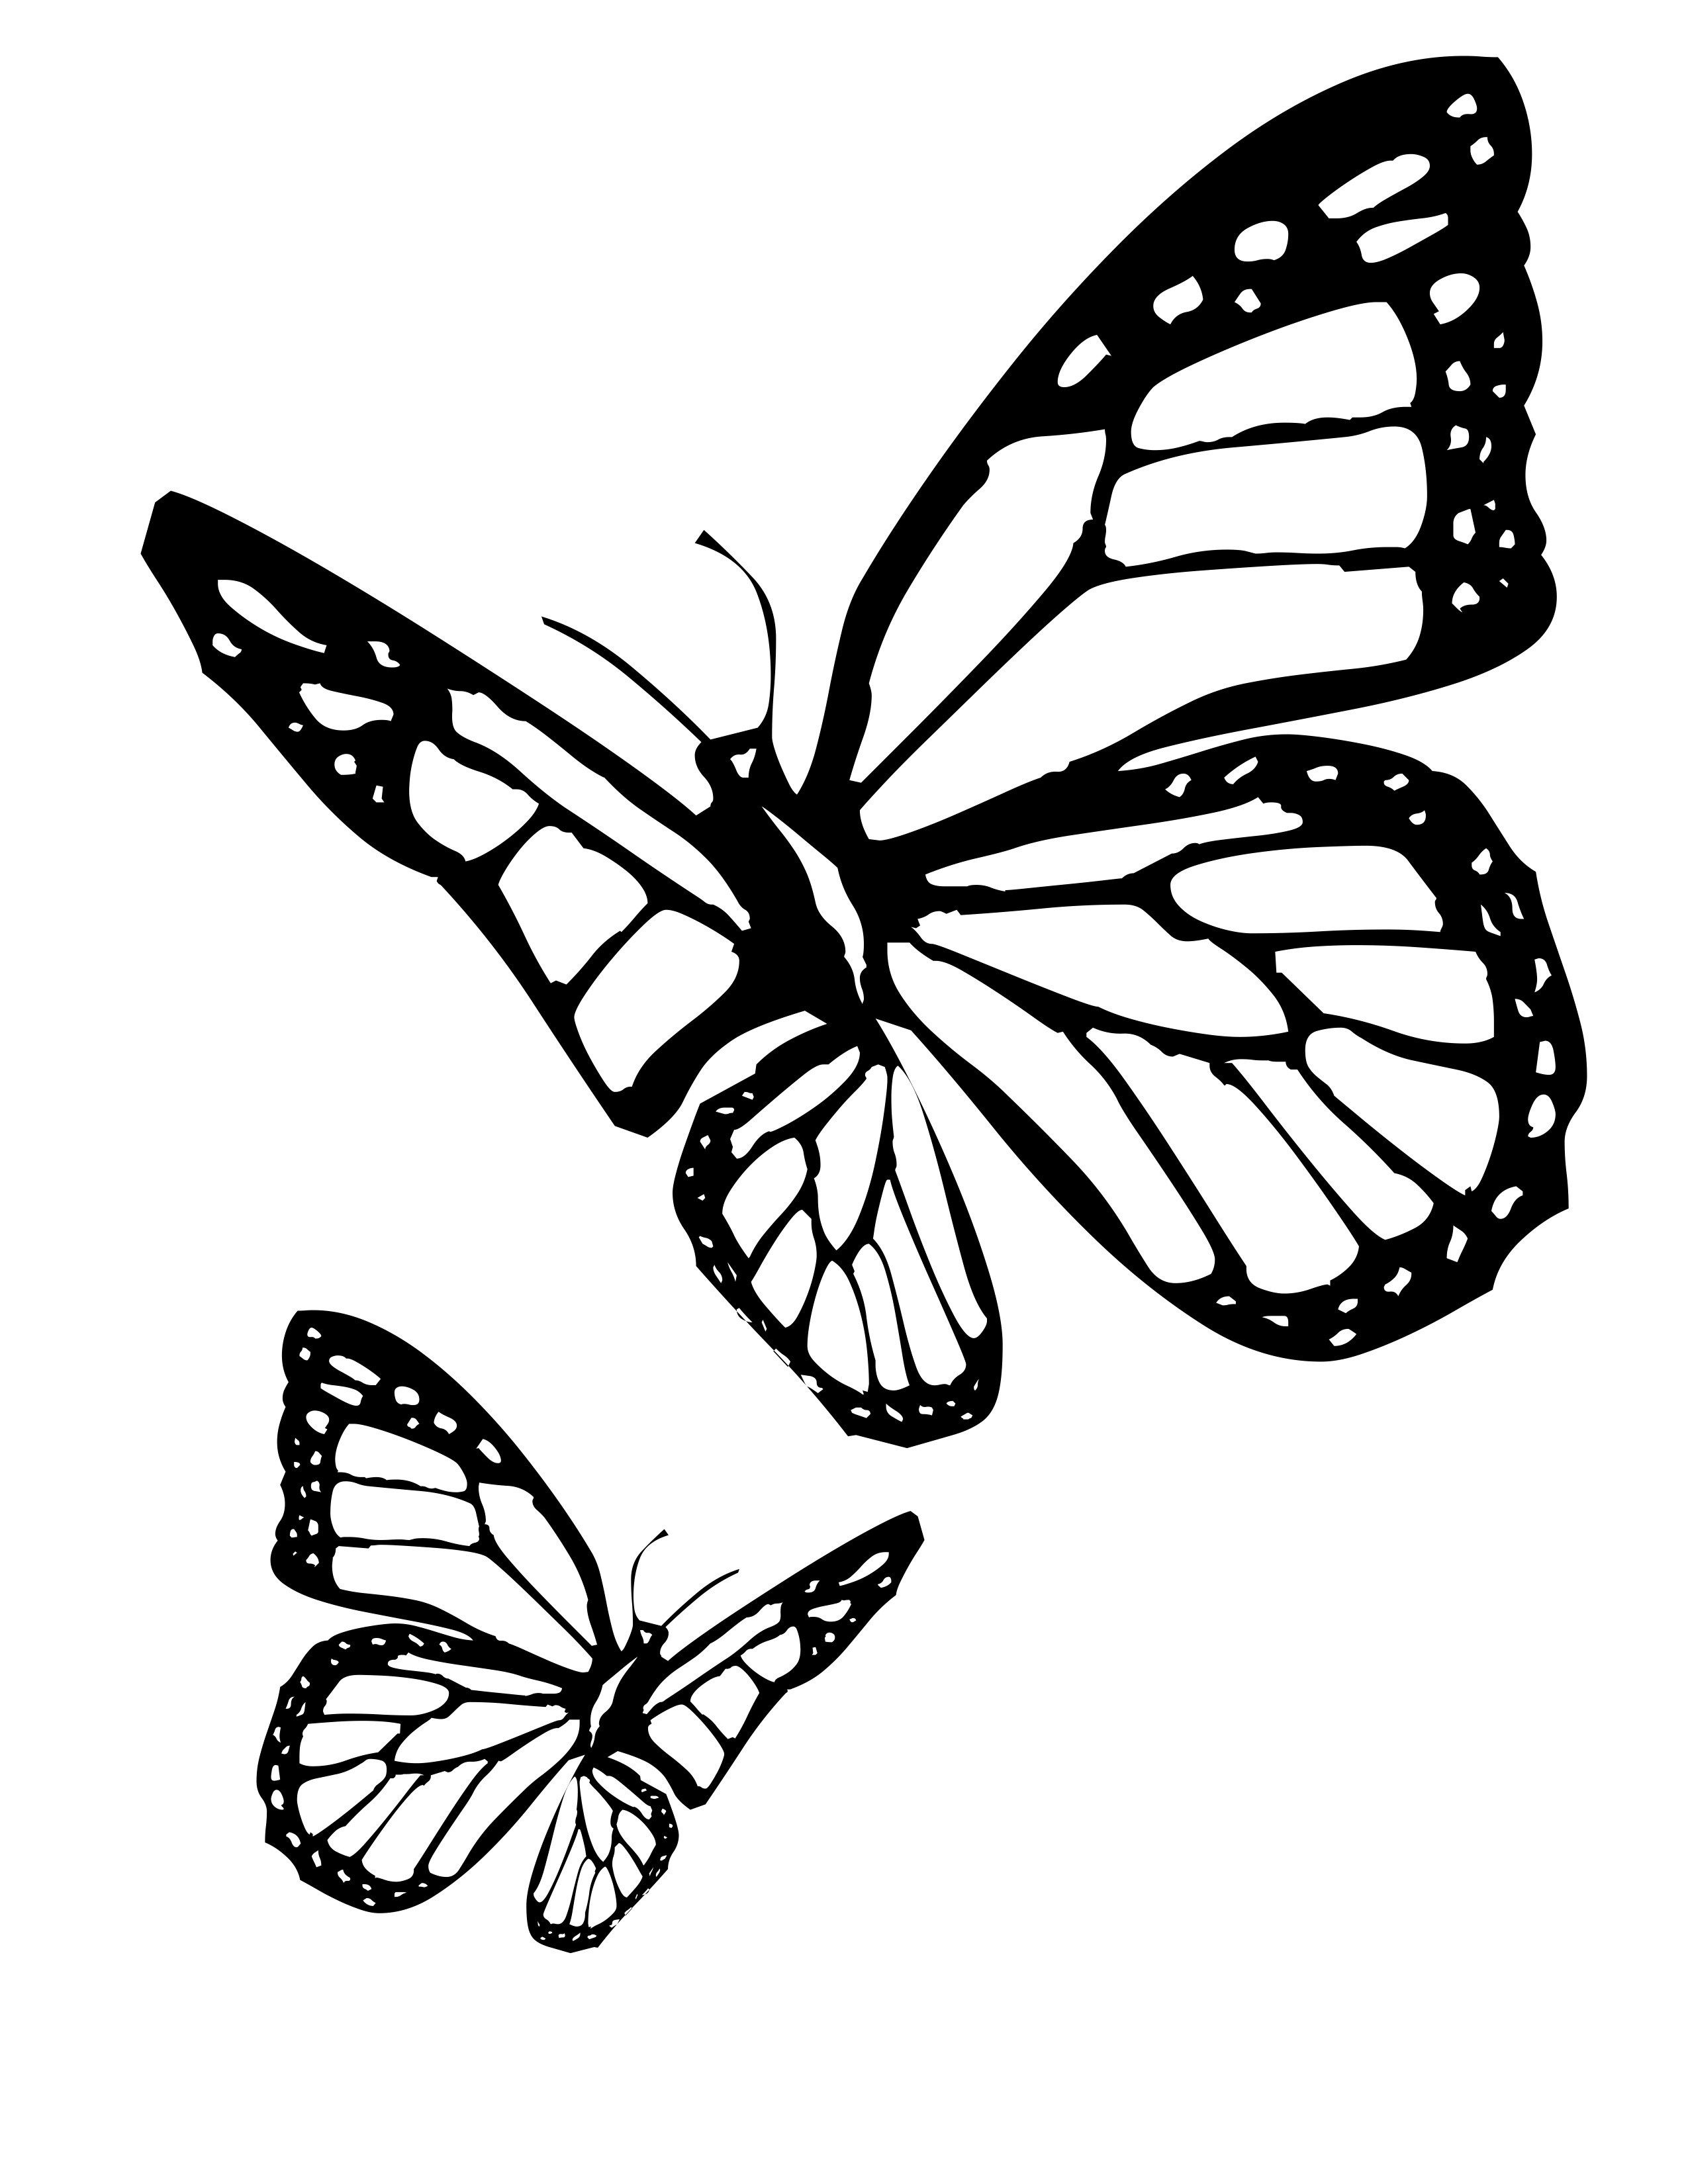 Cool Butterfly Coloring Pages For Kids In 2020 Butterfly Outline